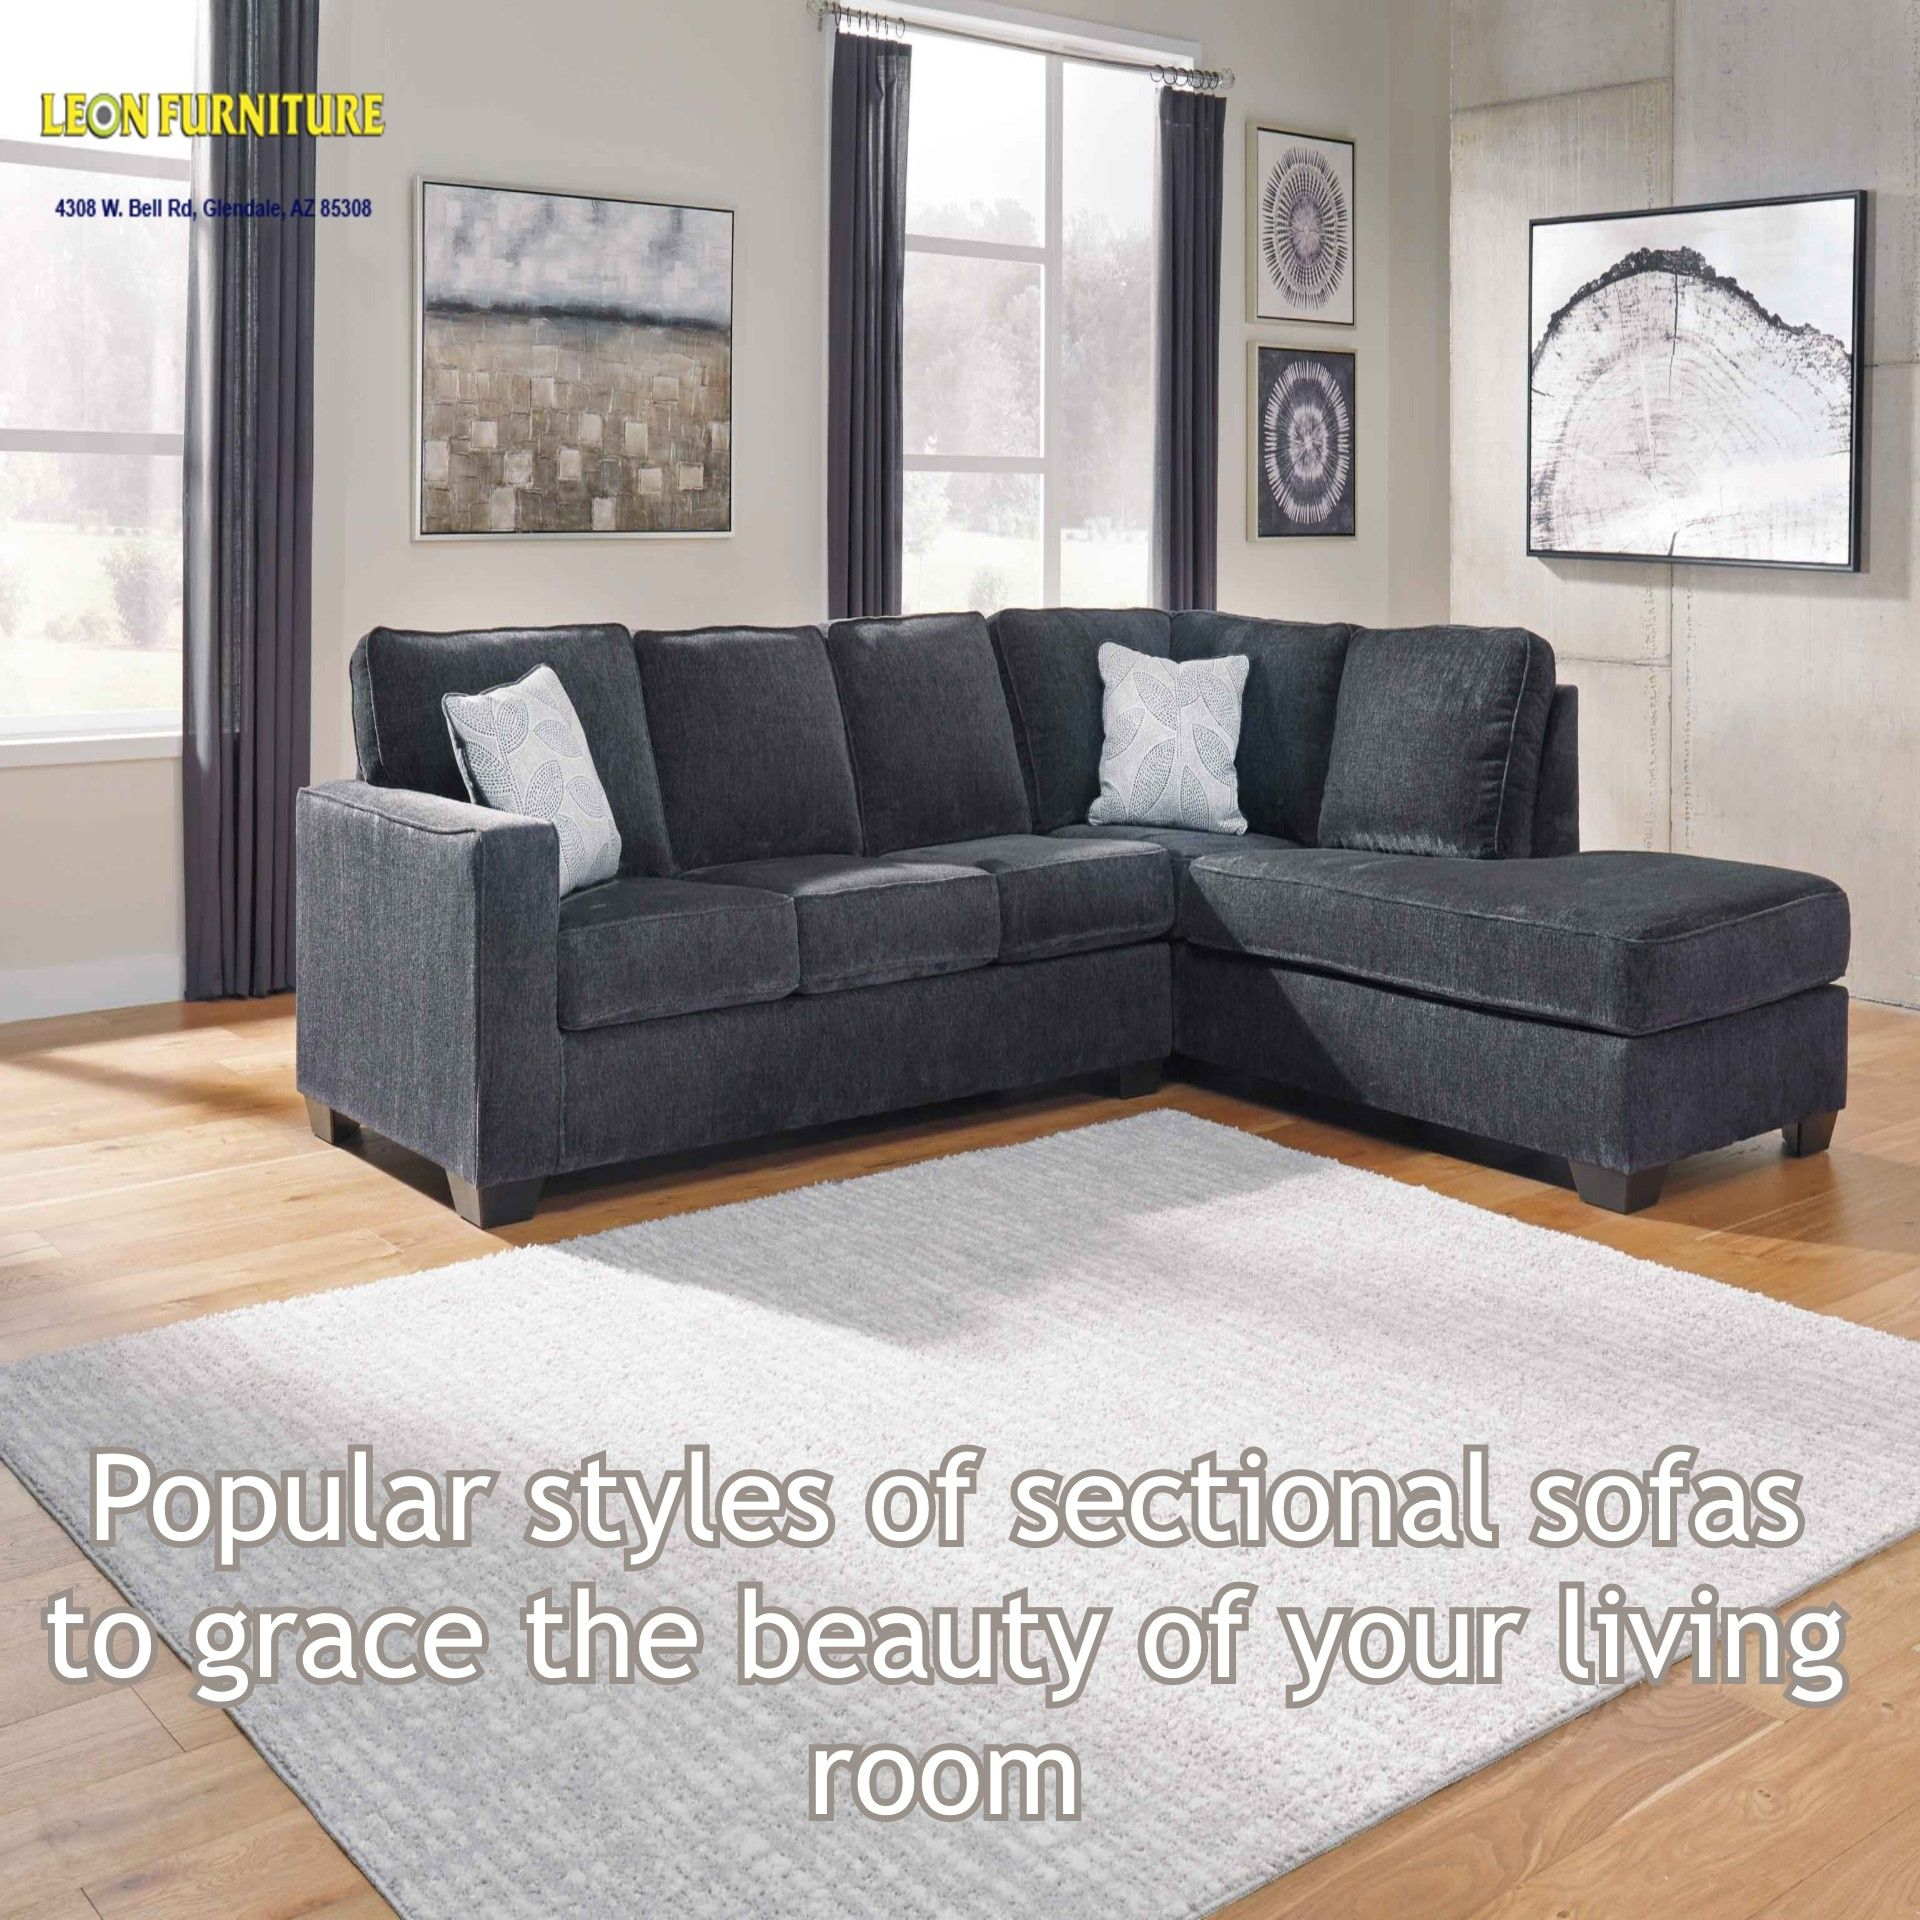 Popular Styles Of Sectional Sofas To Grace The Beauty Of Your